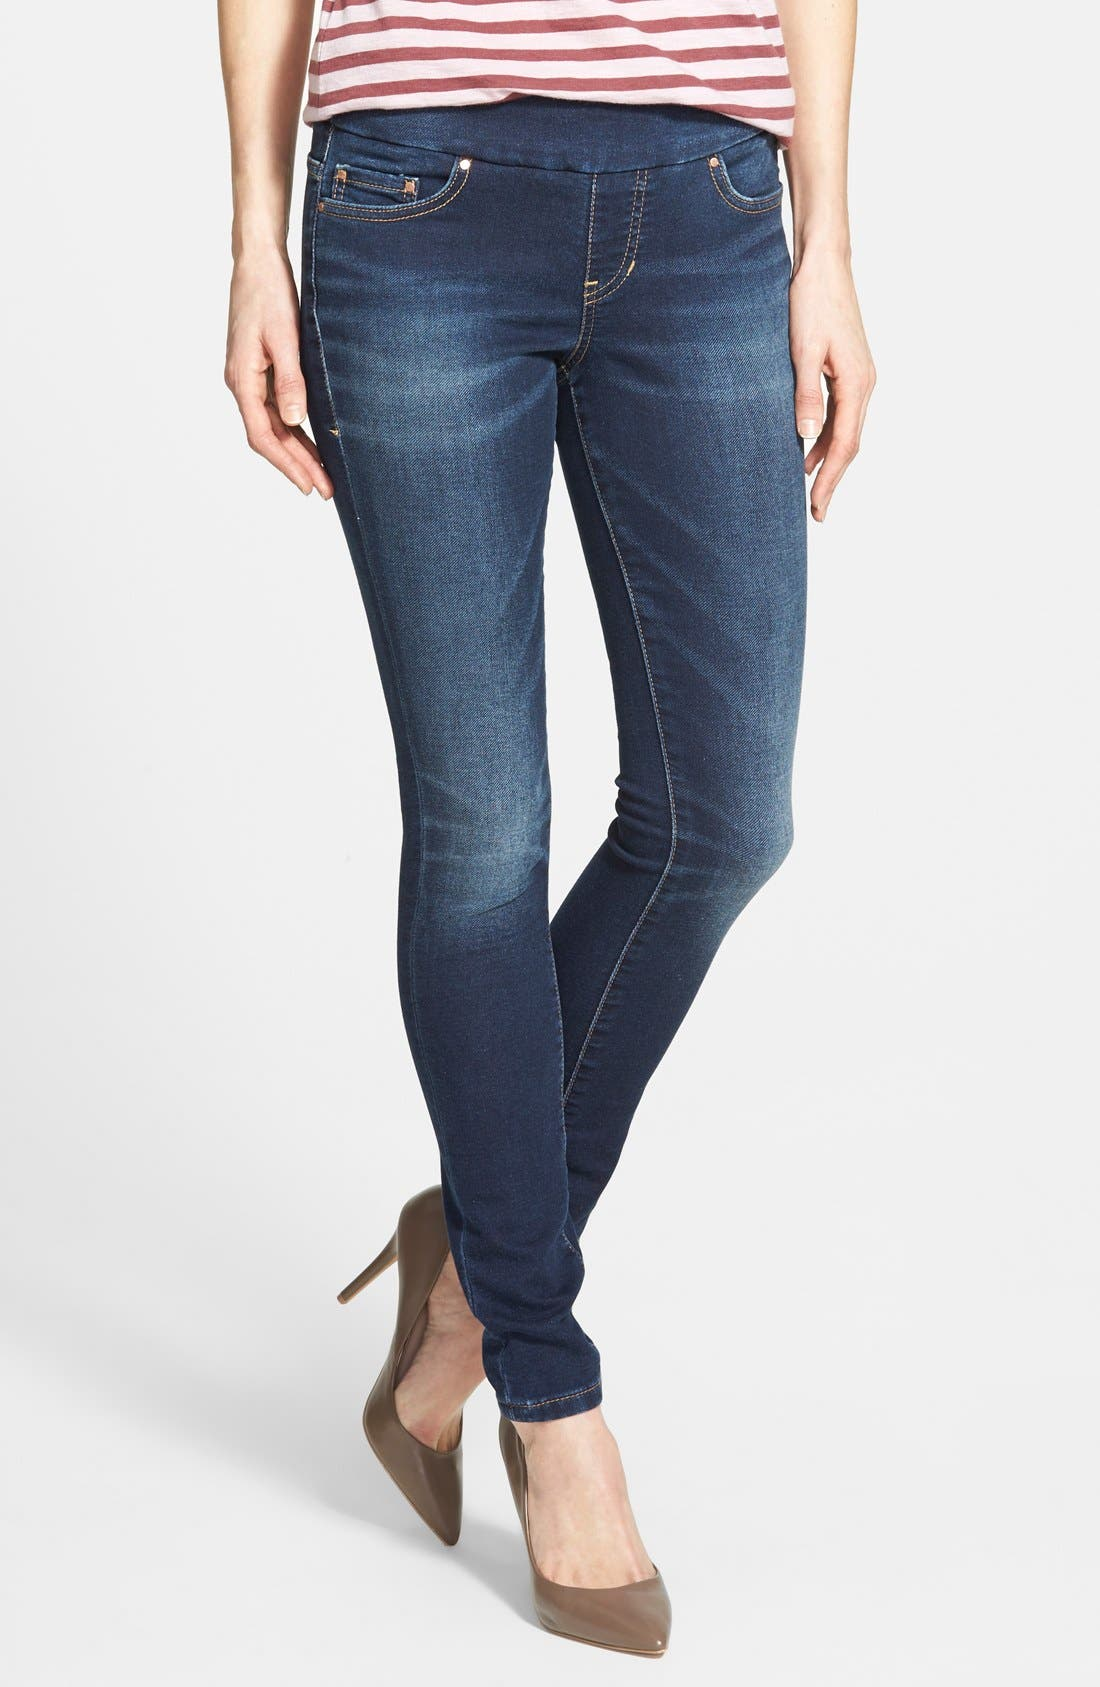 Main Image - Jag Jeans 'Nora' Pull-On Stretch Knit Skinny Jeans